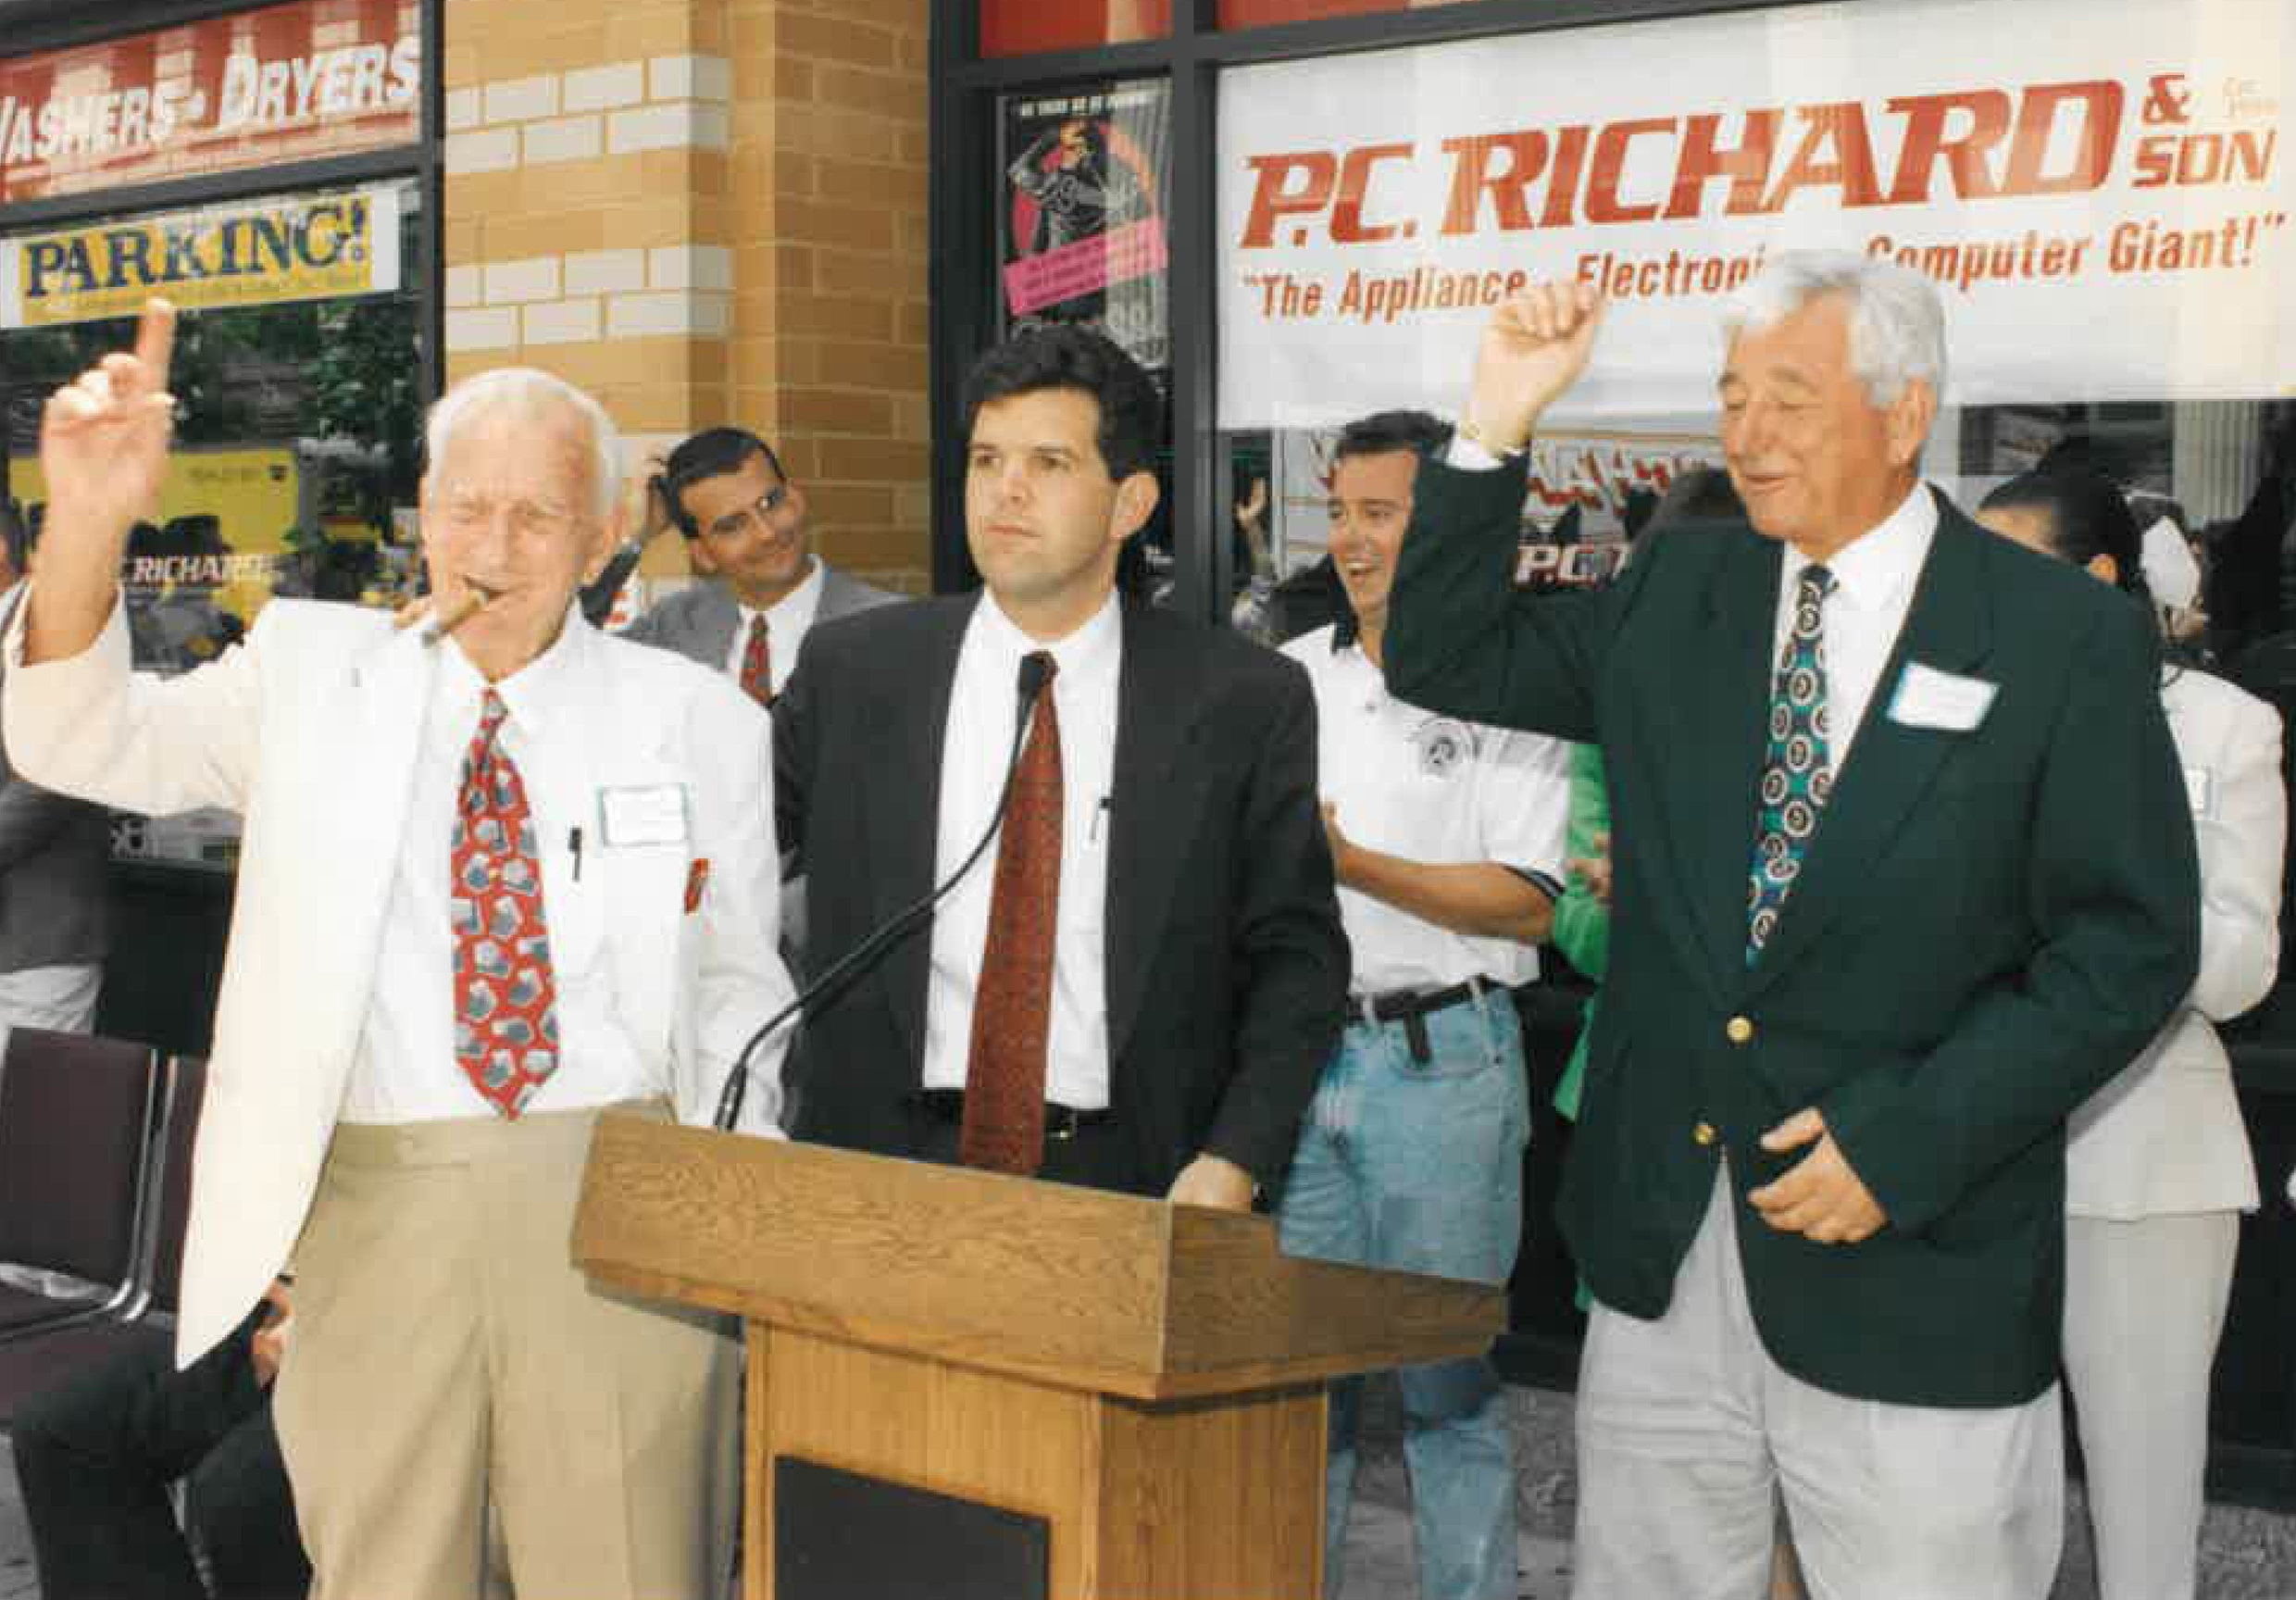 The Richard family and former Union Square Partnership Executive Director Rob Walsh (middle) oversee the grand opening and ribbon cutting ceremony for P.C. Richard & Son's flagship Manhattan store at Union Square in 1996.